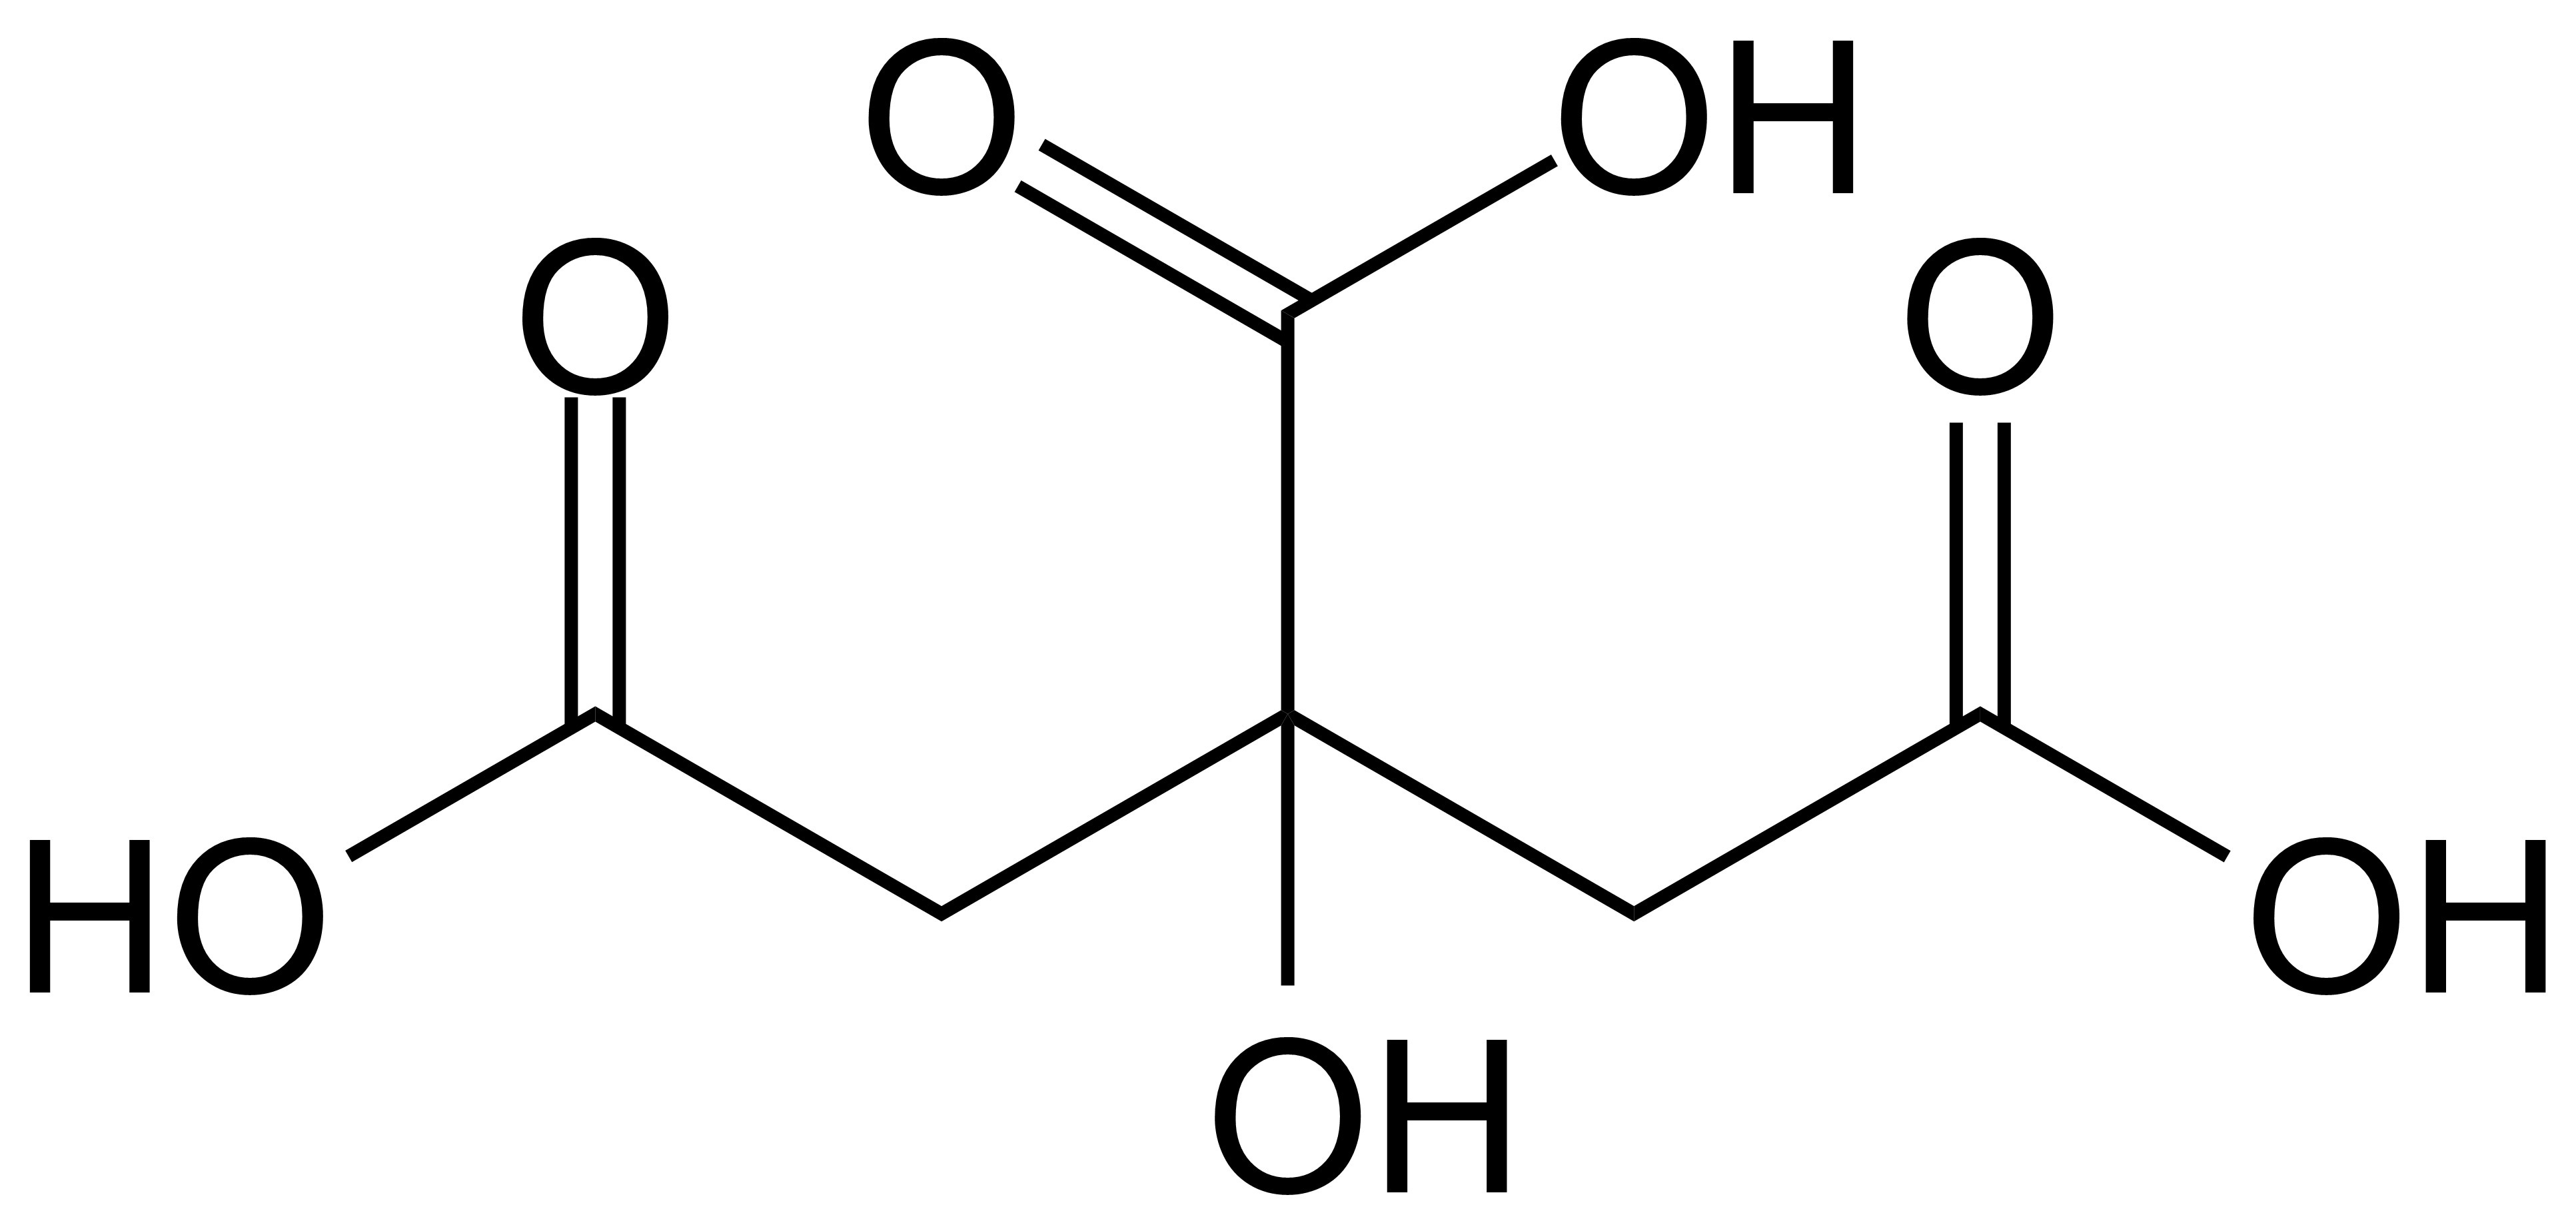 How many h+(aq) can be generated by each citric acid